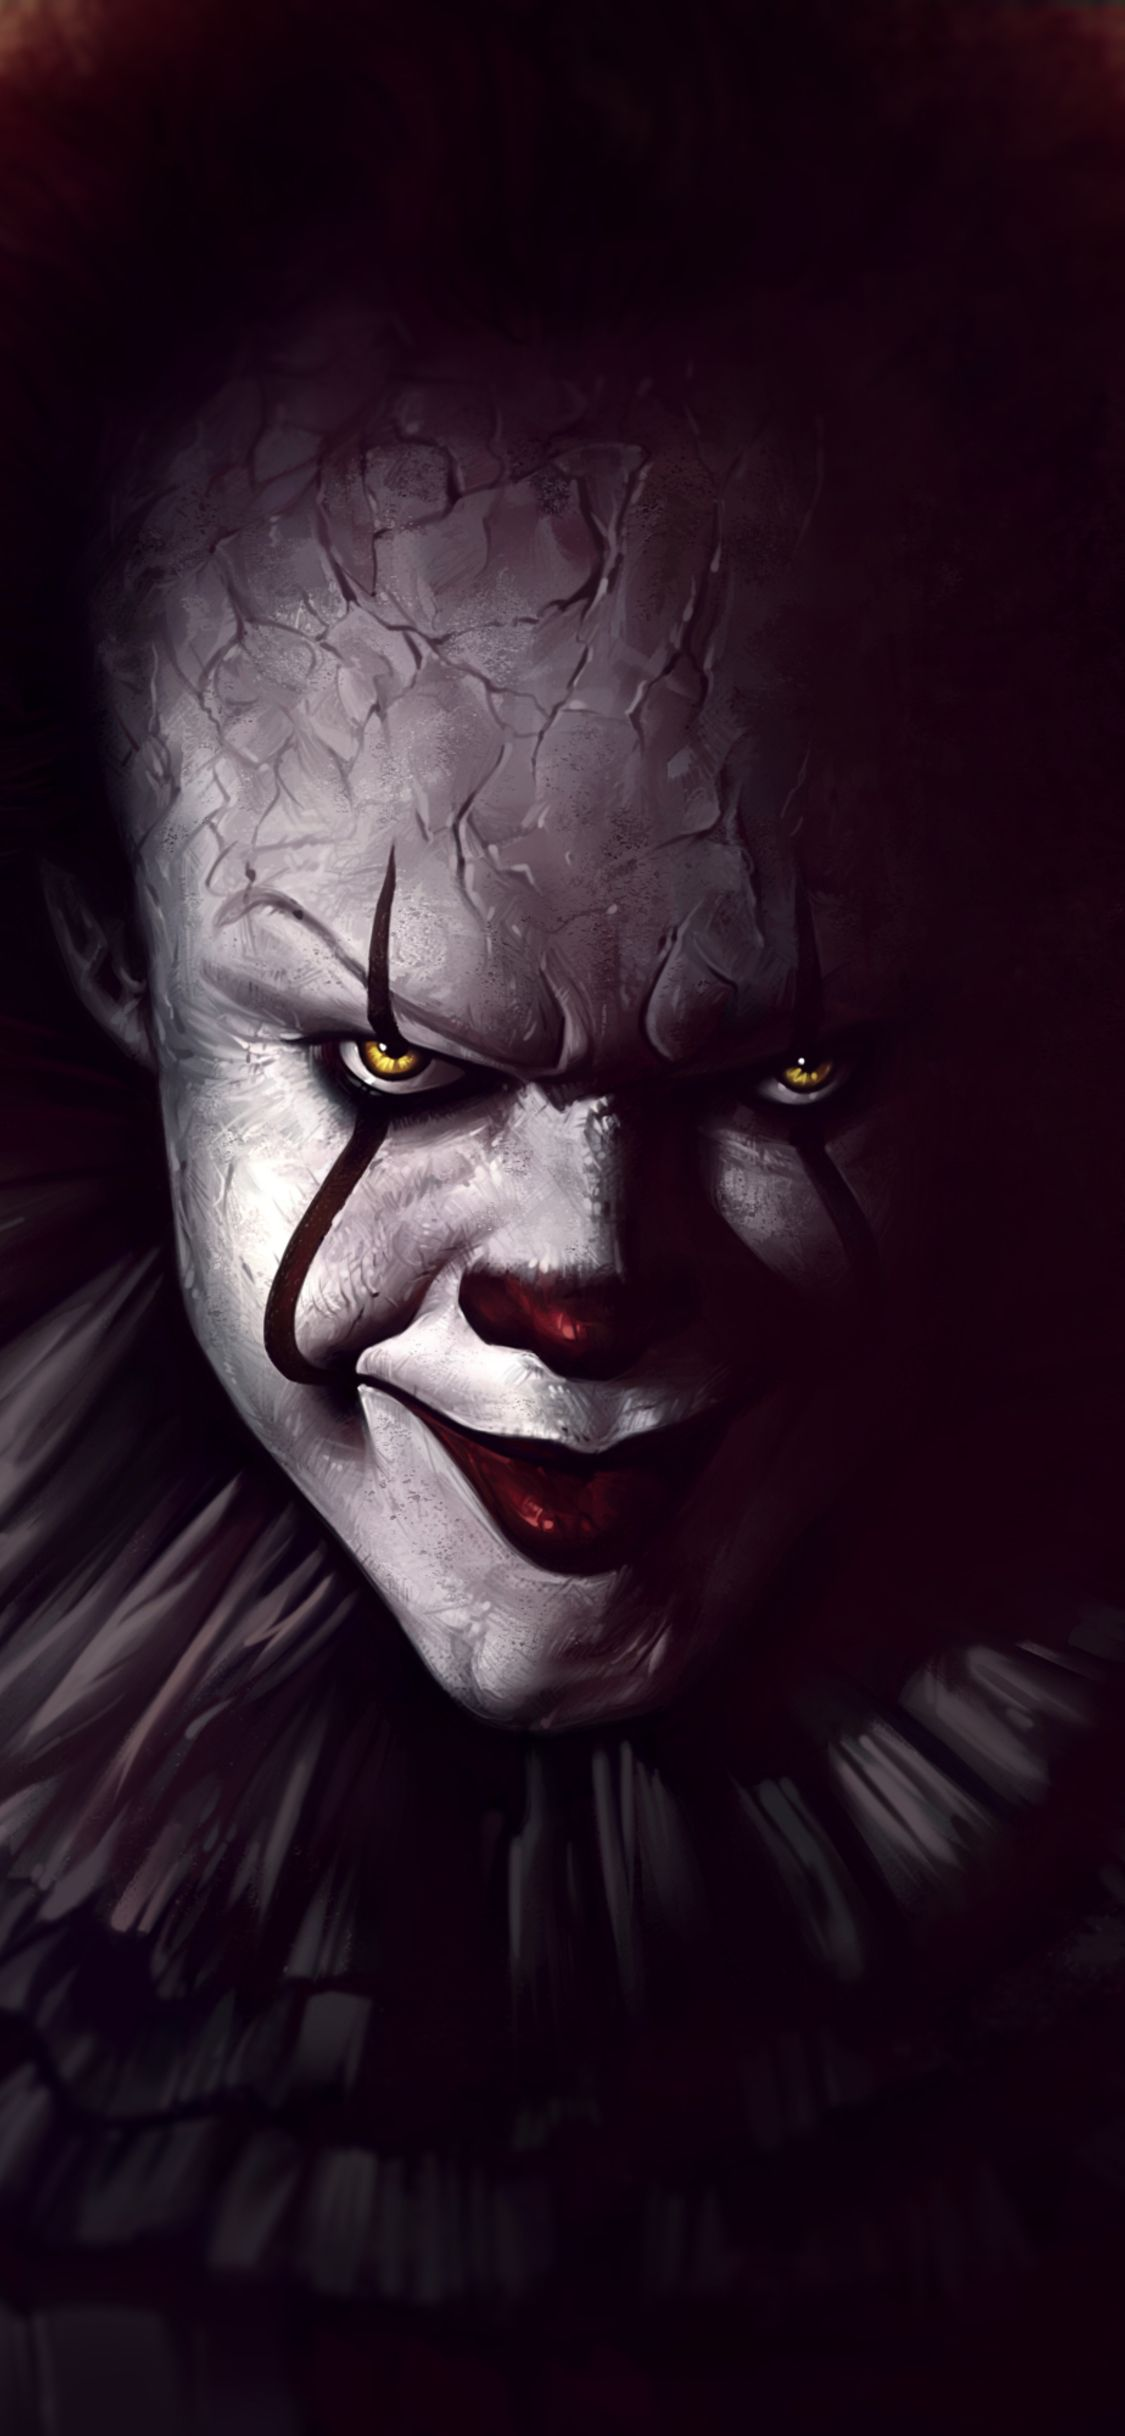 Pennywise The Clown Iphone Wallpapers Top Free Pennywise